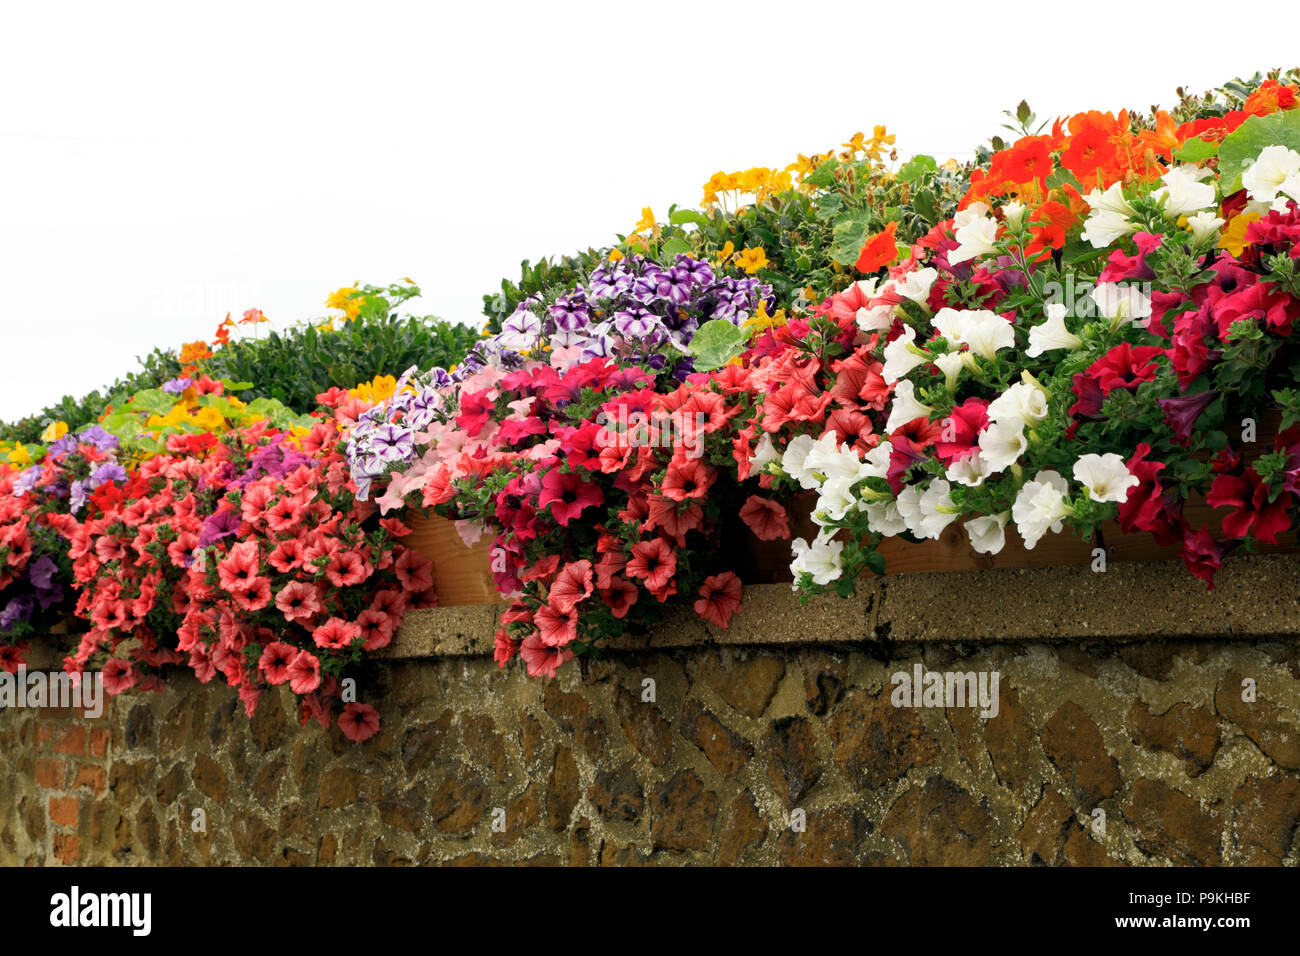 Garden Wall, Pétunias, violet, rouge, rose, blanc, jaune Photo Stock